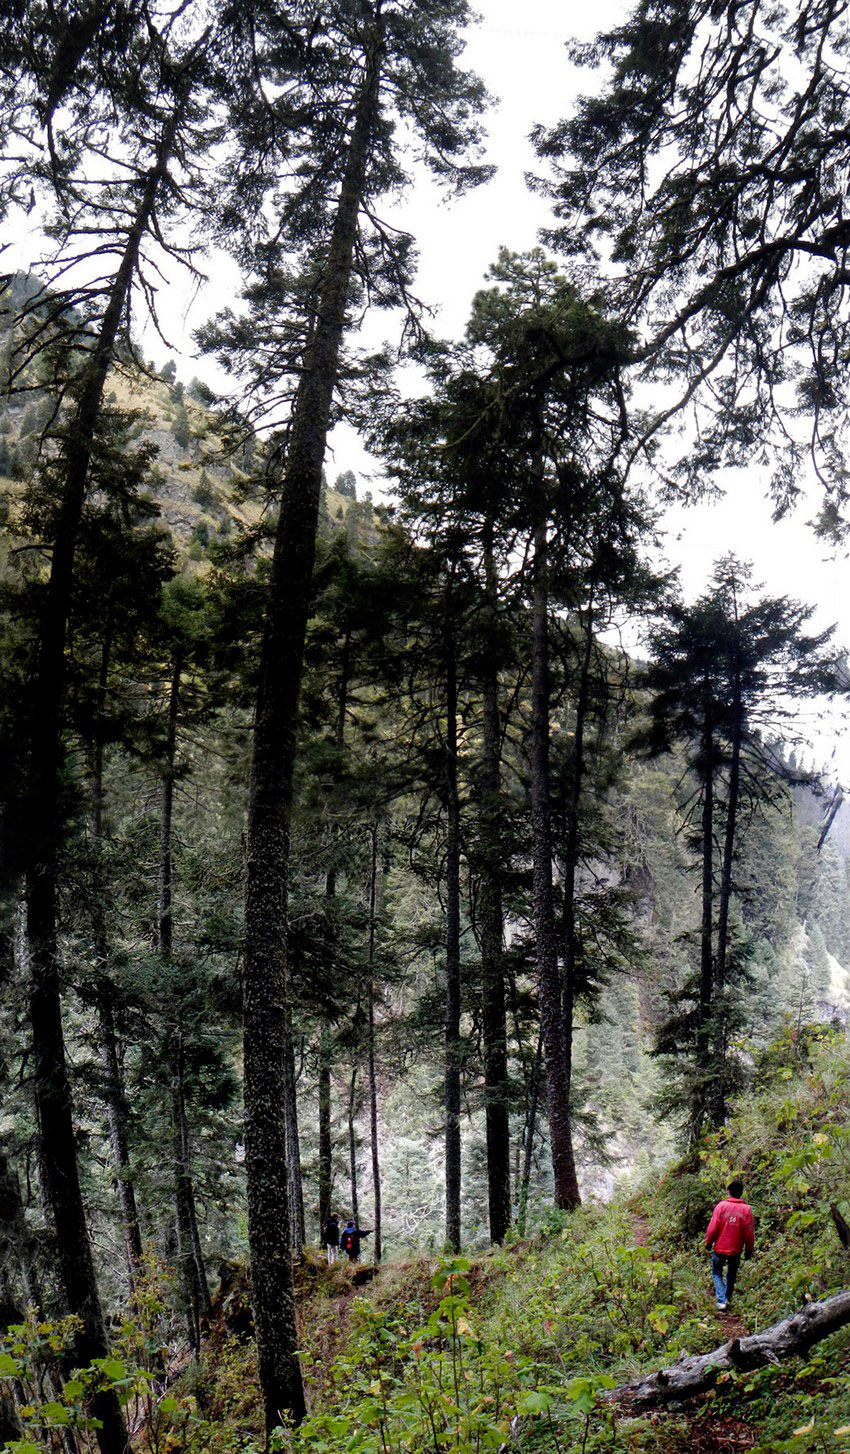 Pine trees in the Valle de los Gigantes can reach a height of 100 meters.